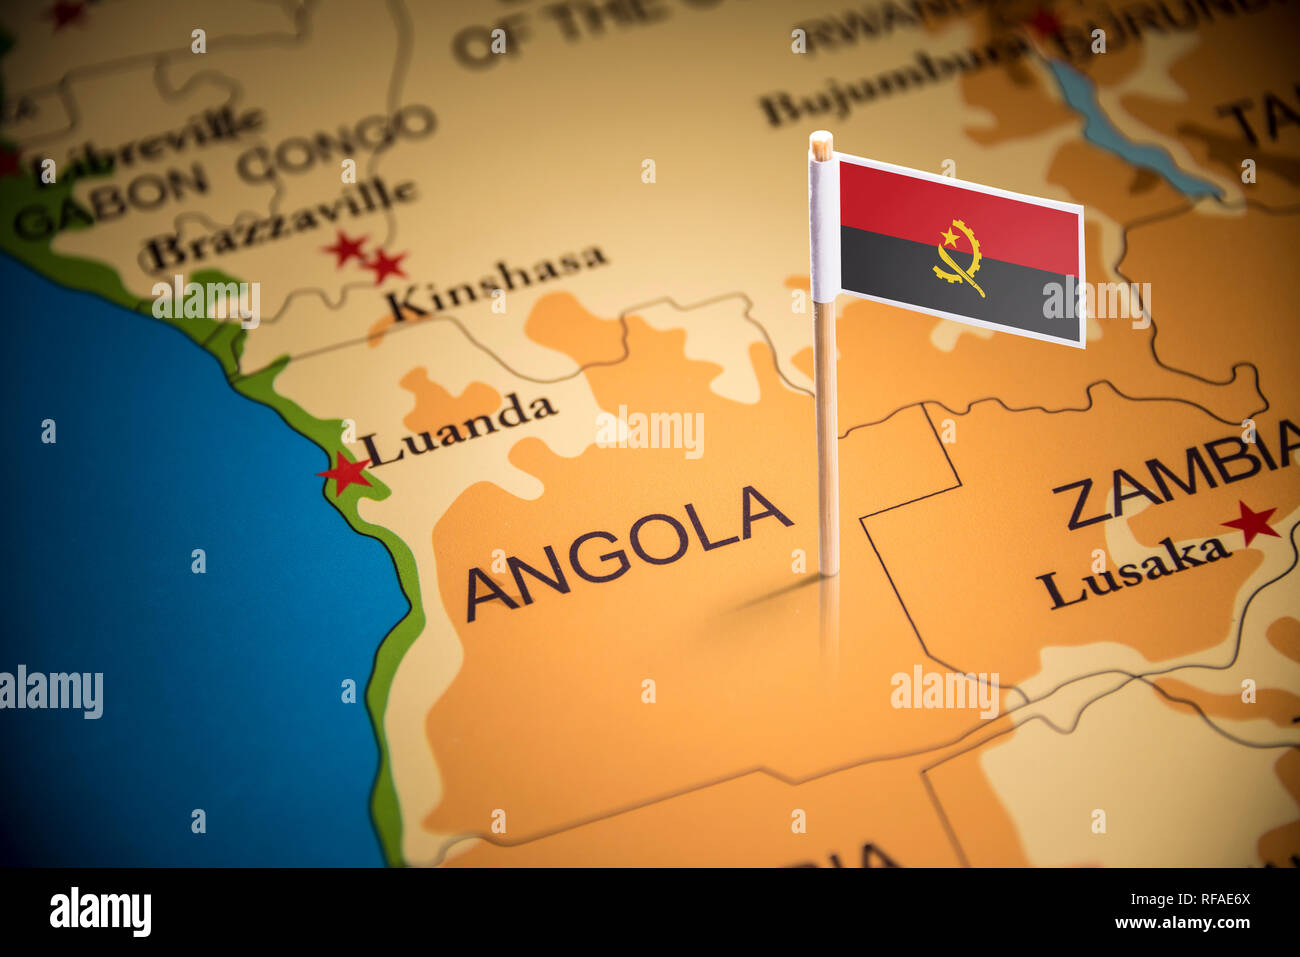 Angola marked with a flag on the map - Stock Image